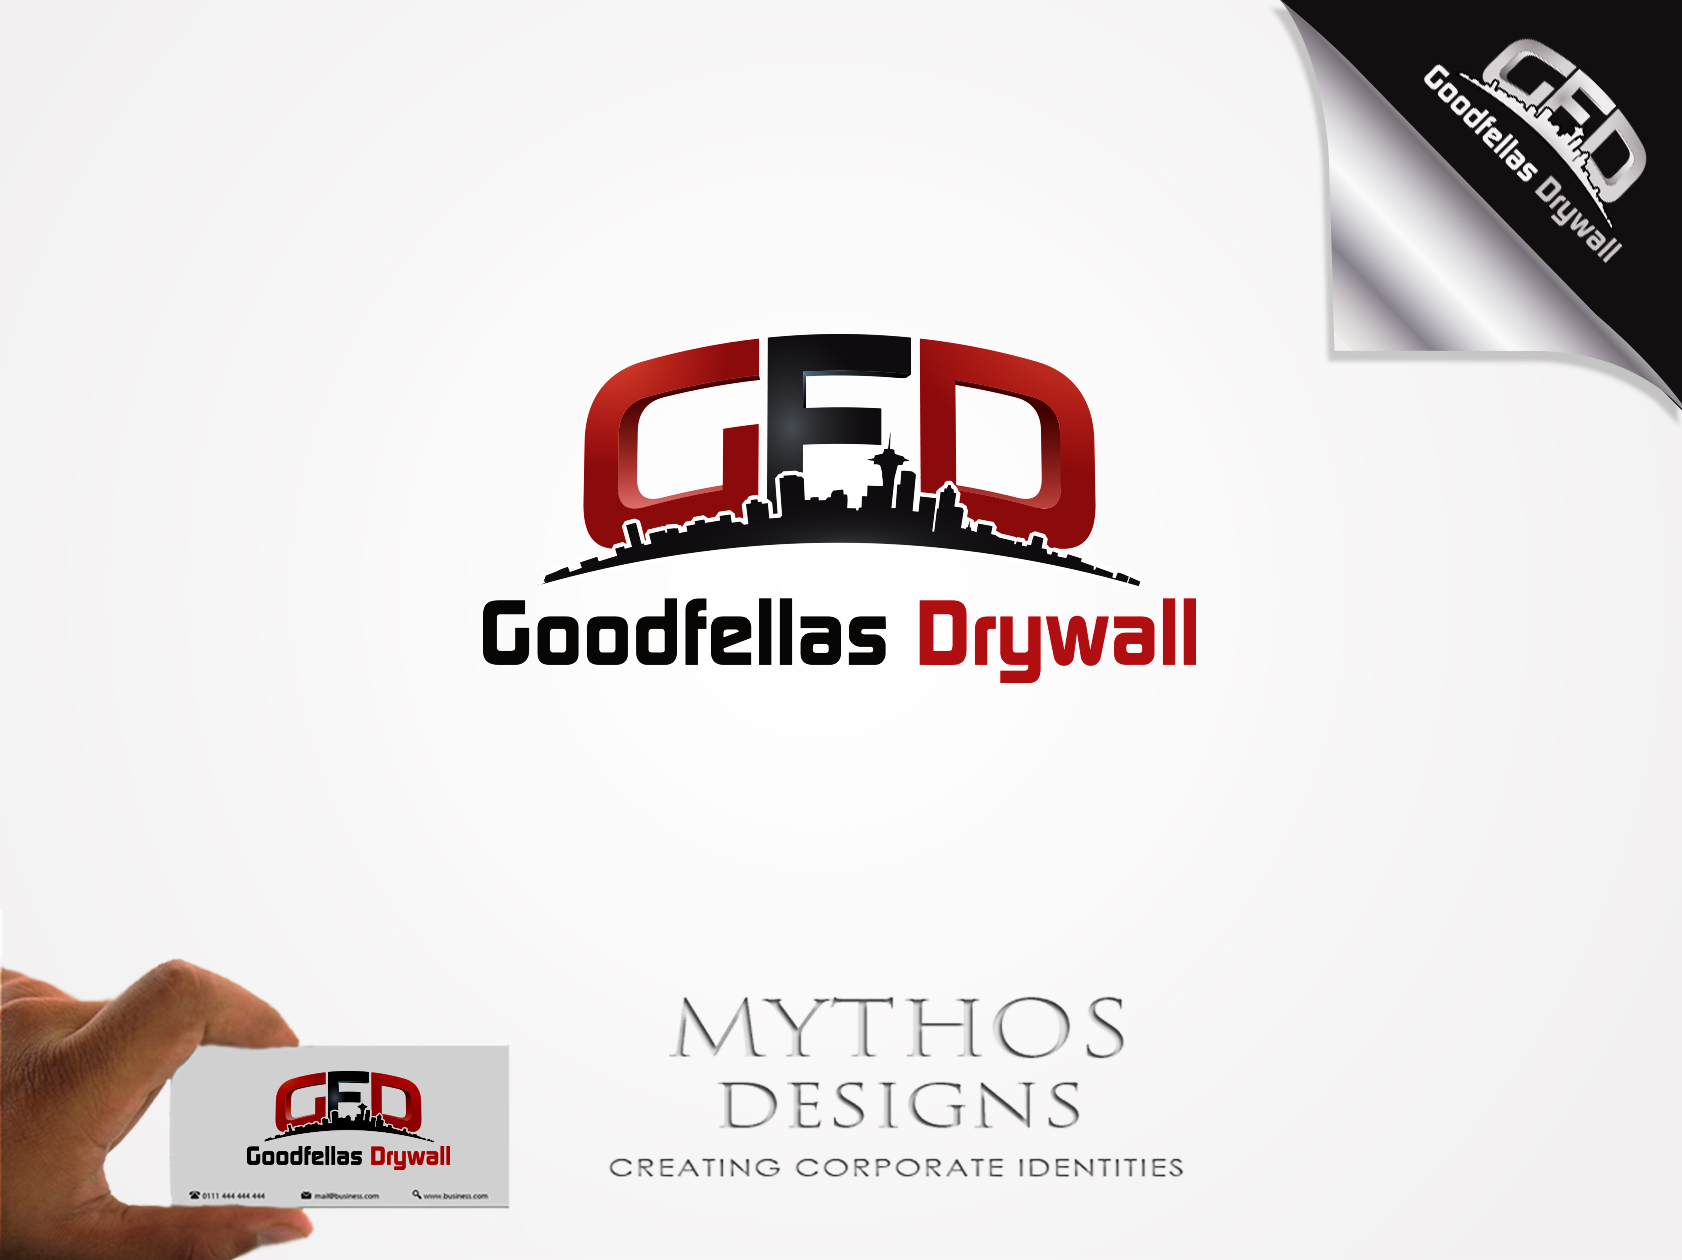 Logo Design by Mythos Designs - Entry No. 189 in the Logo Design Contest Creative Logo Design for Goodfellas Drywall.